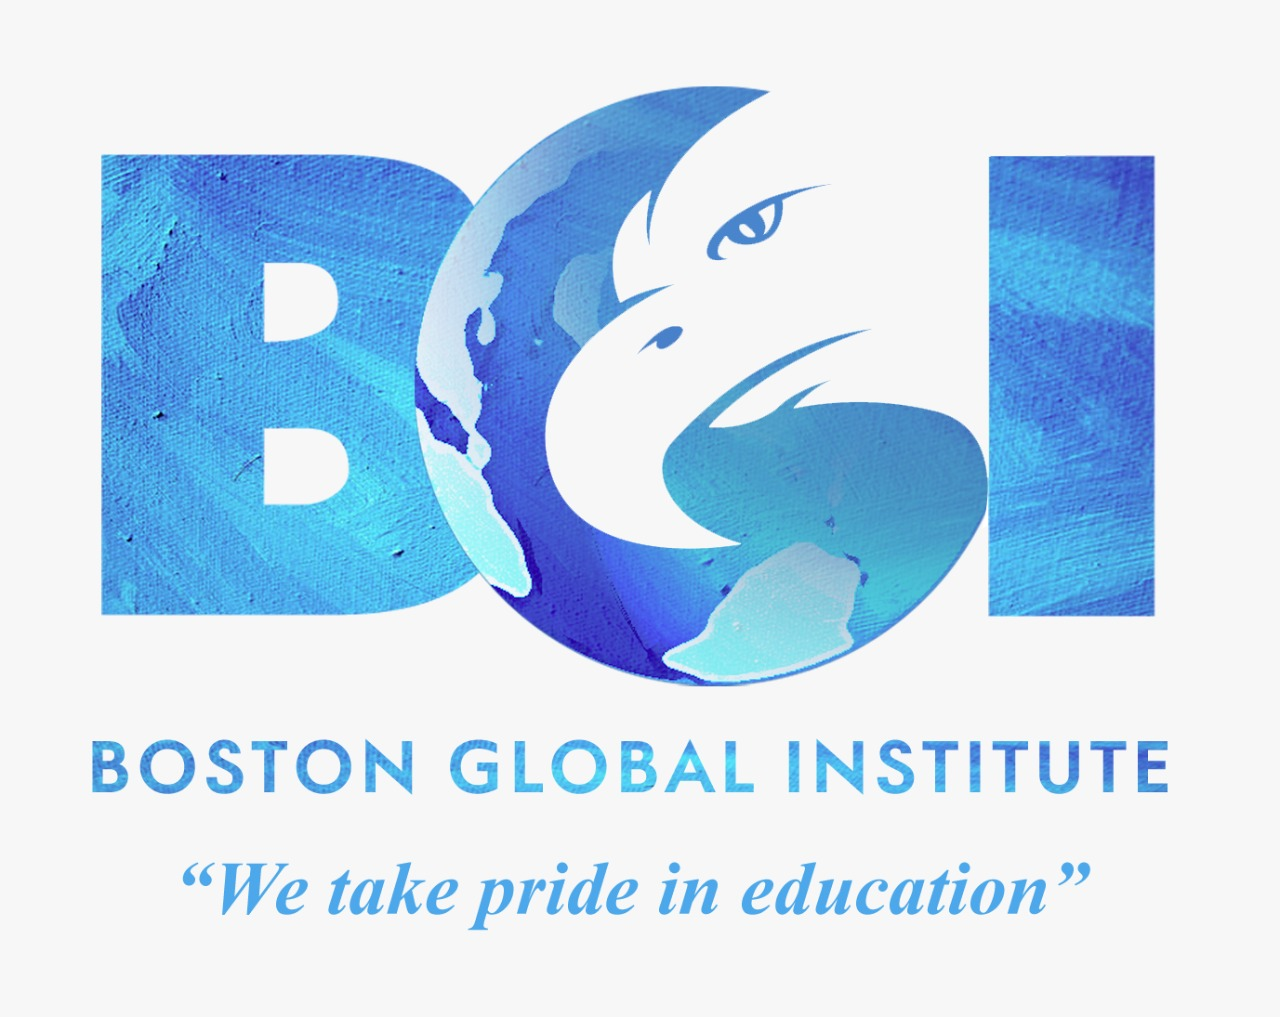 Boston Global Institute